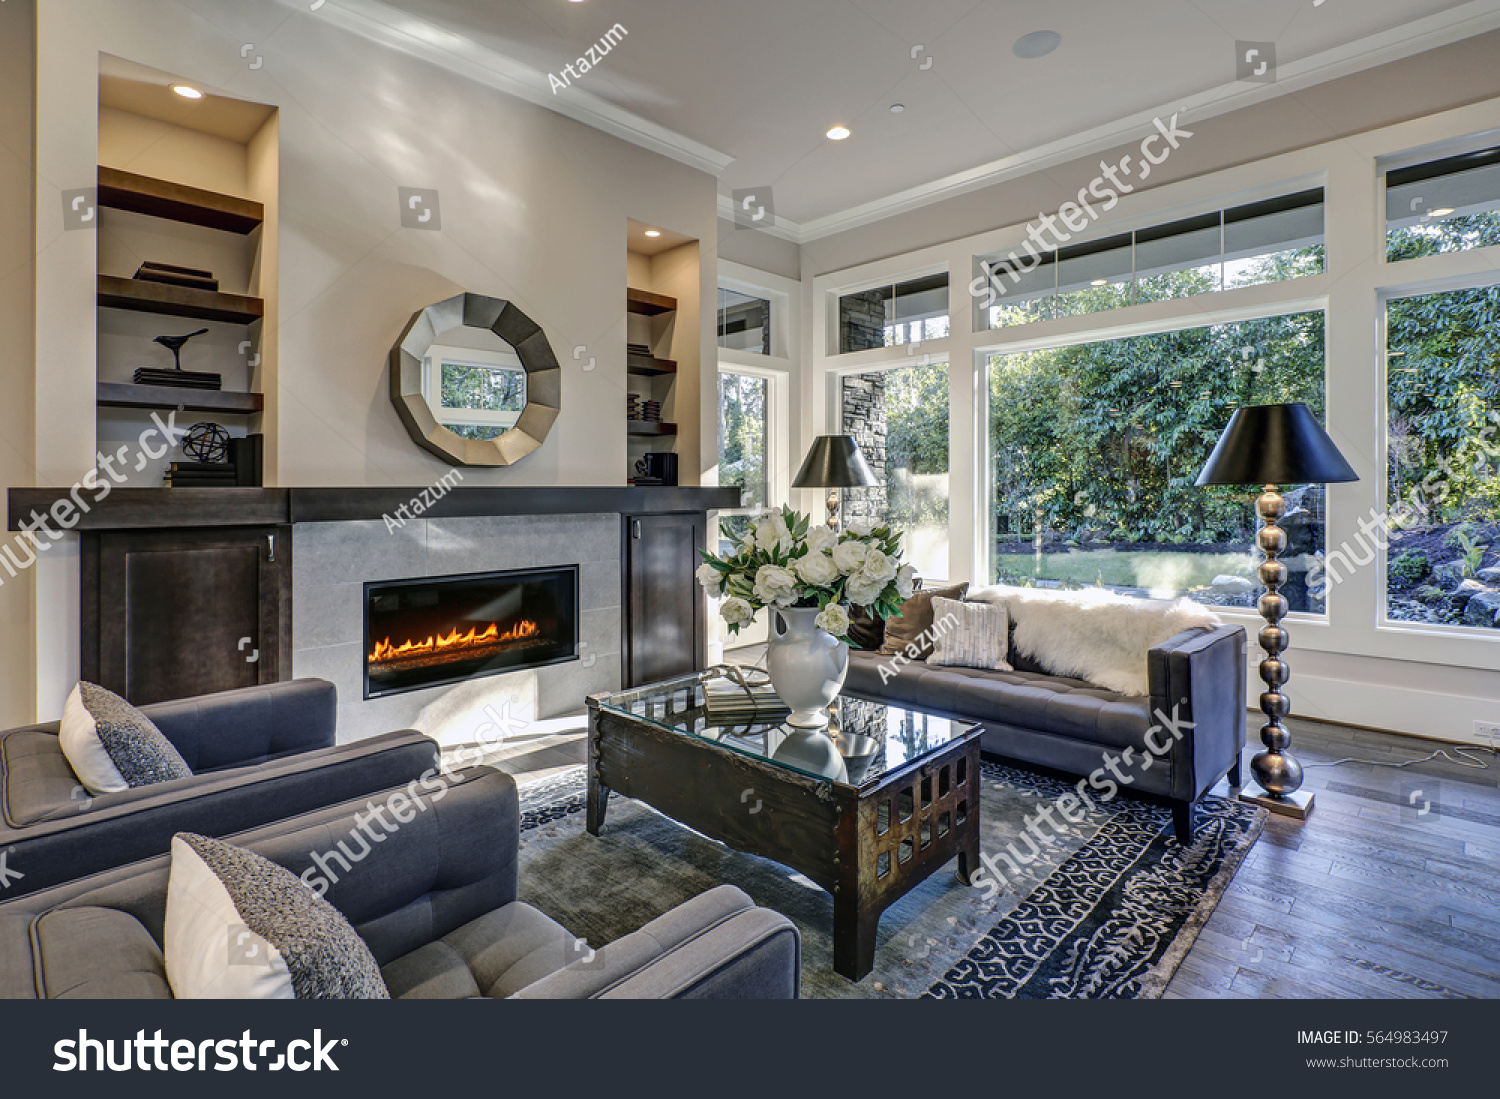 chic living room. chic living room filled with built-in cabinets flanking round mirror atop grey tile fireplace